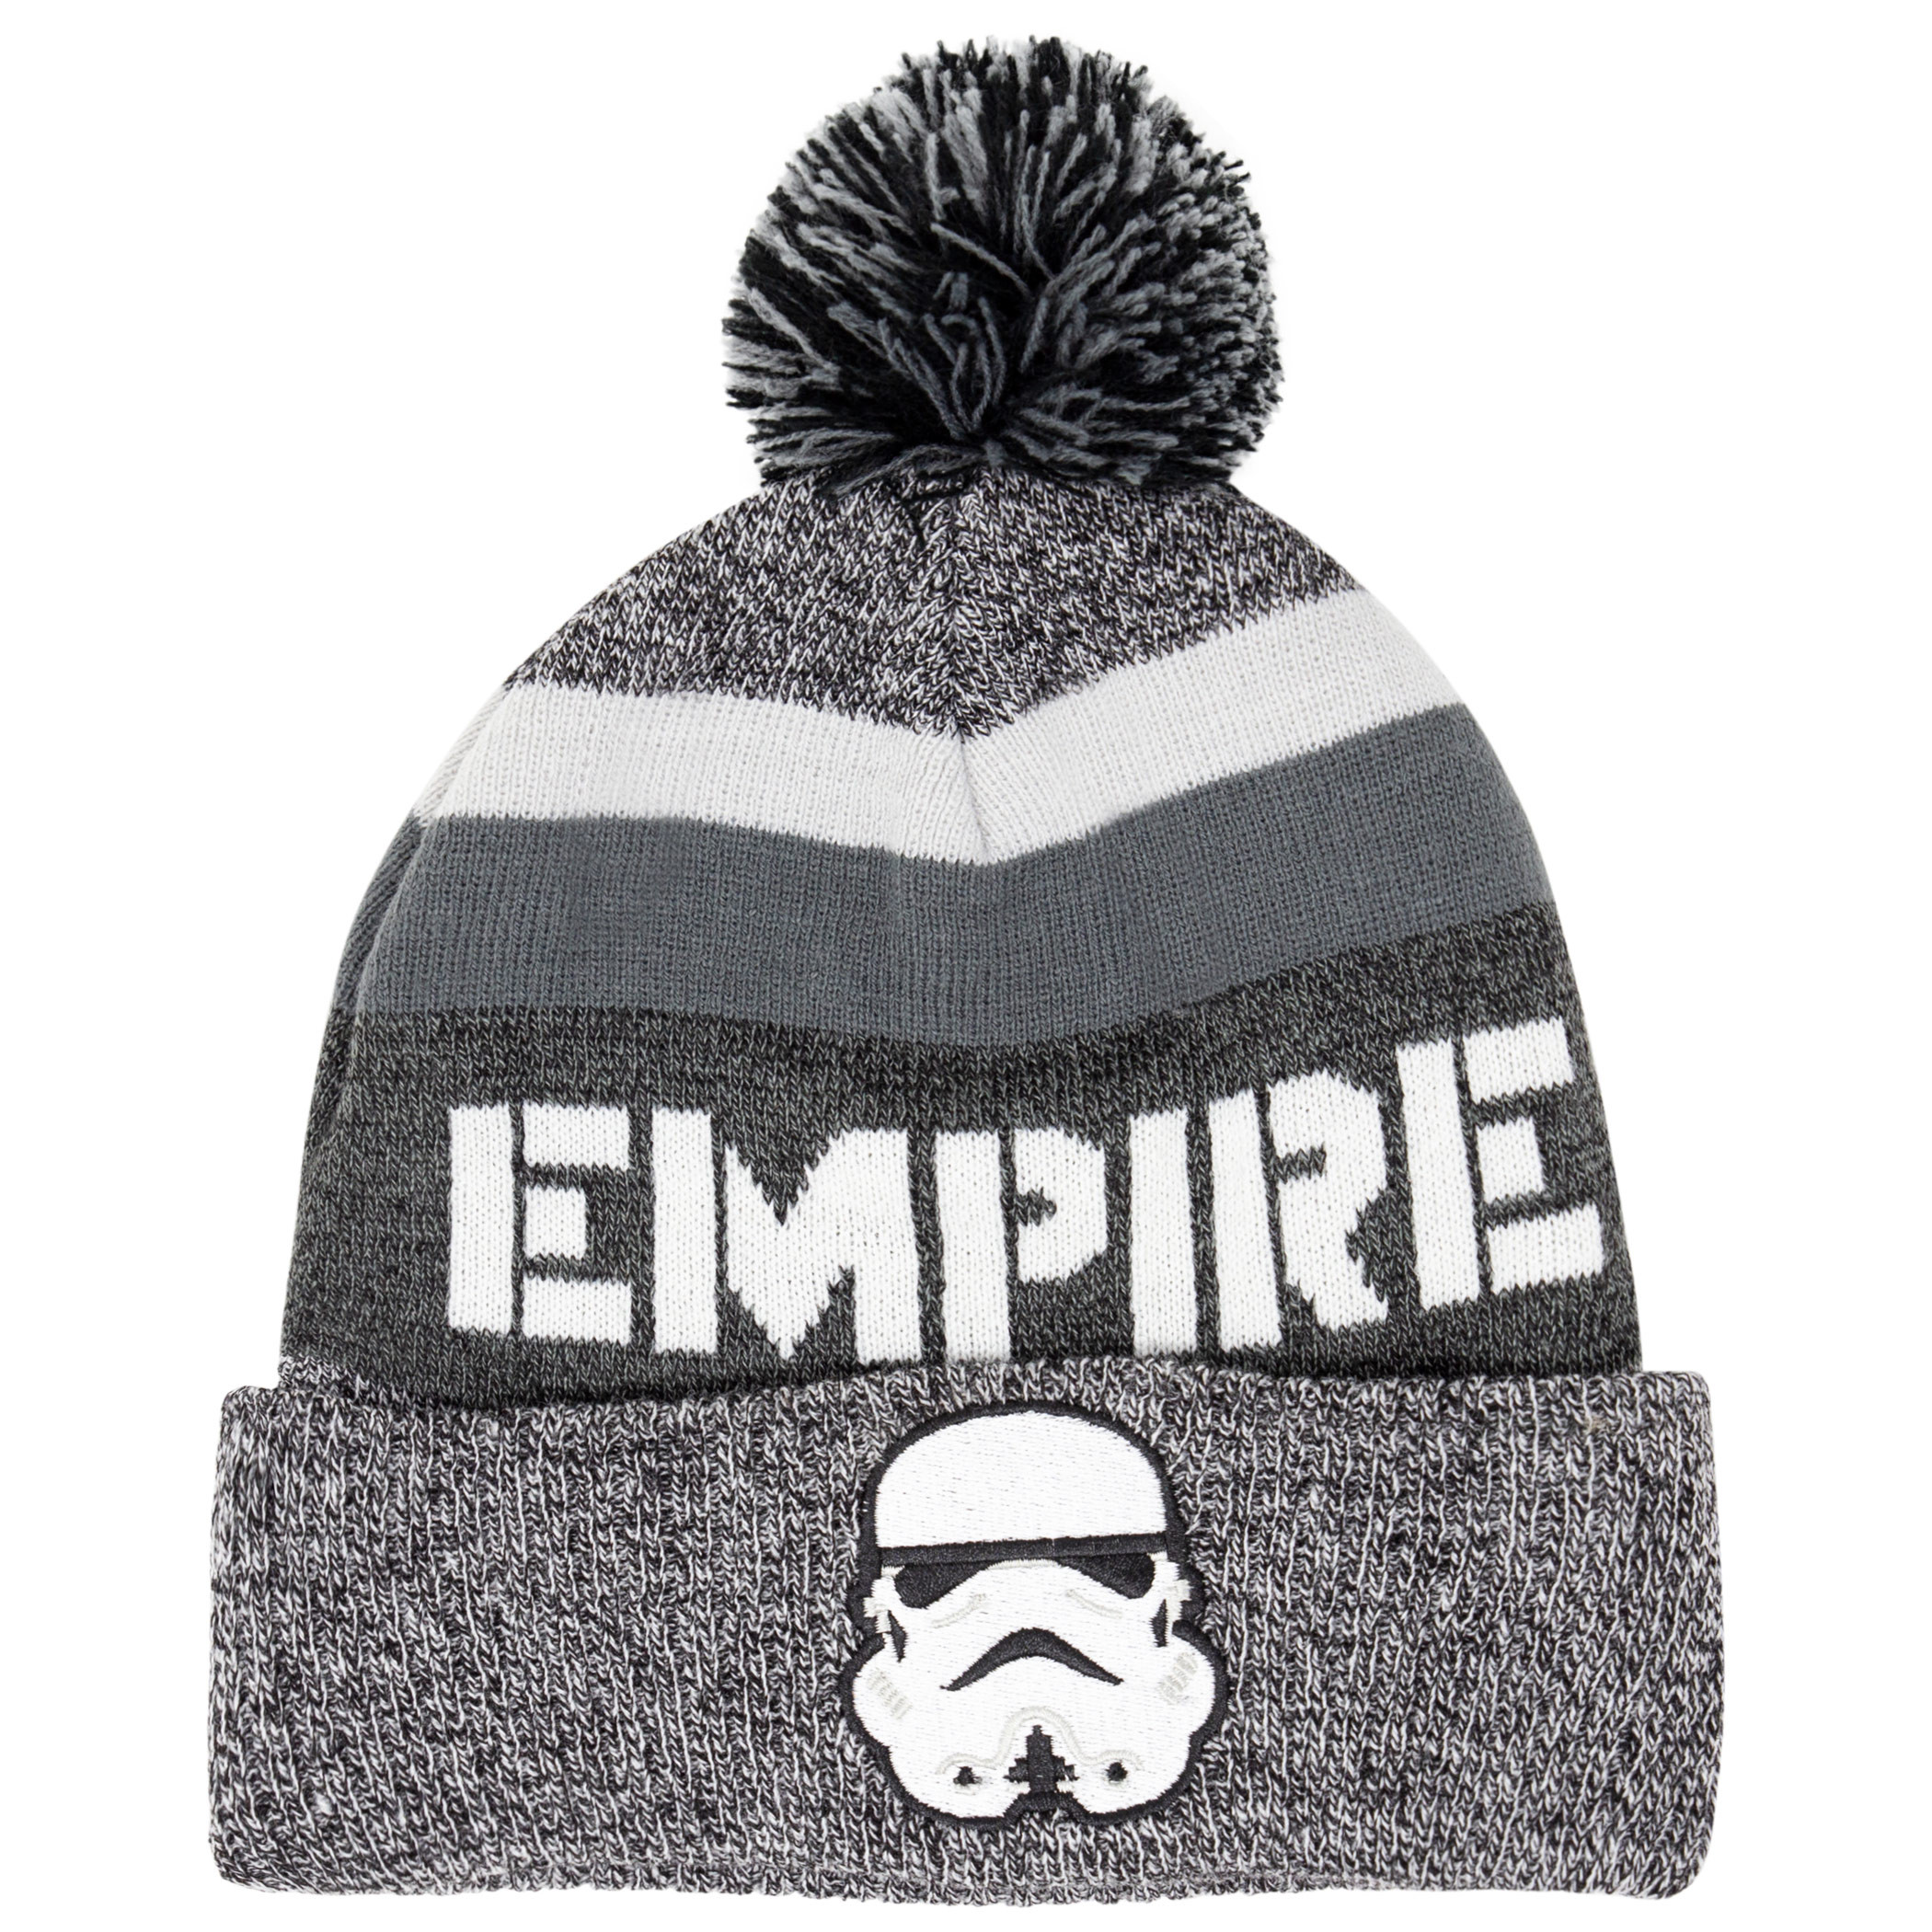 Star Wars Officially Licensed Storm Trooper Cuff Beanie